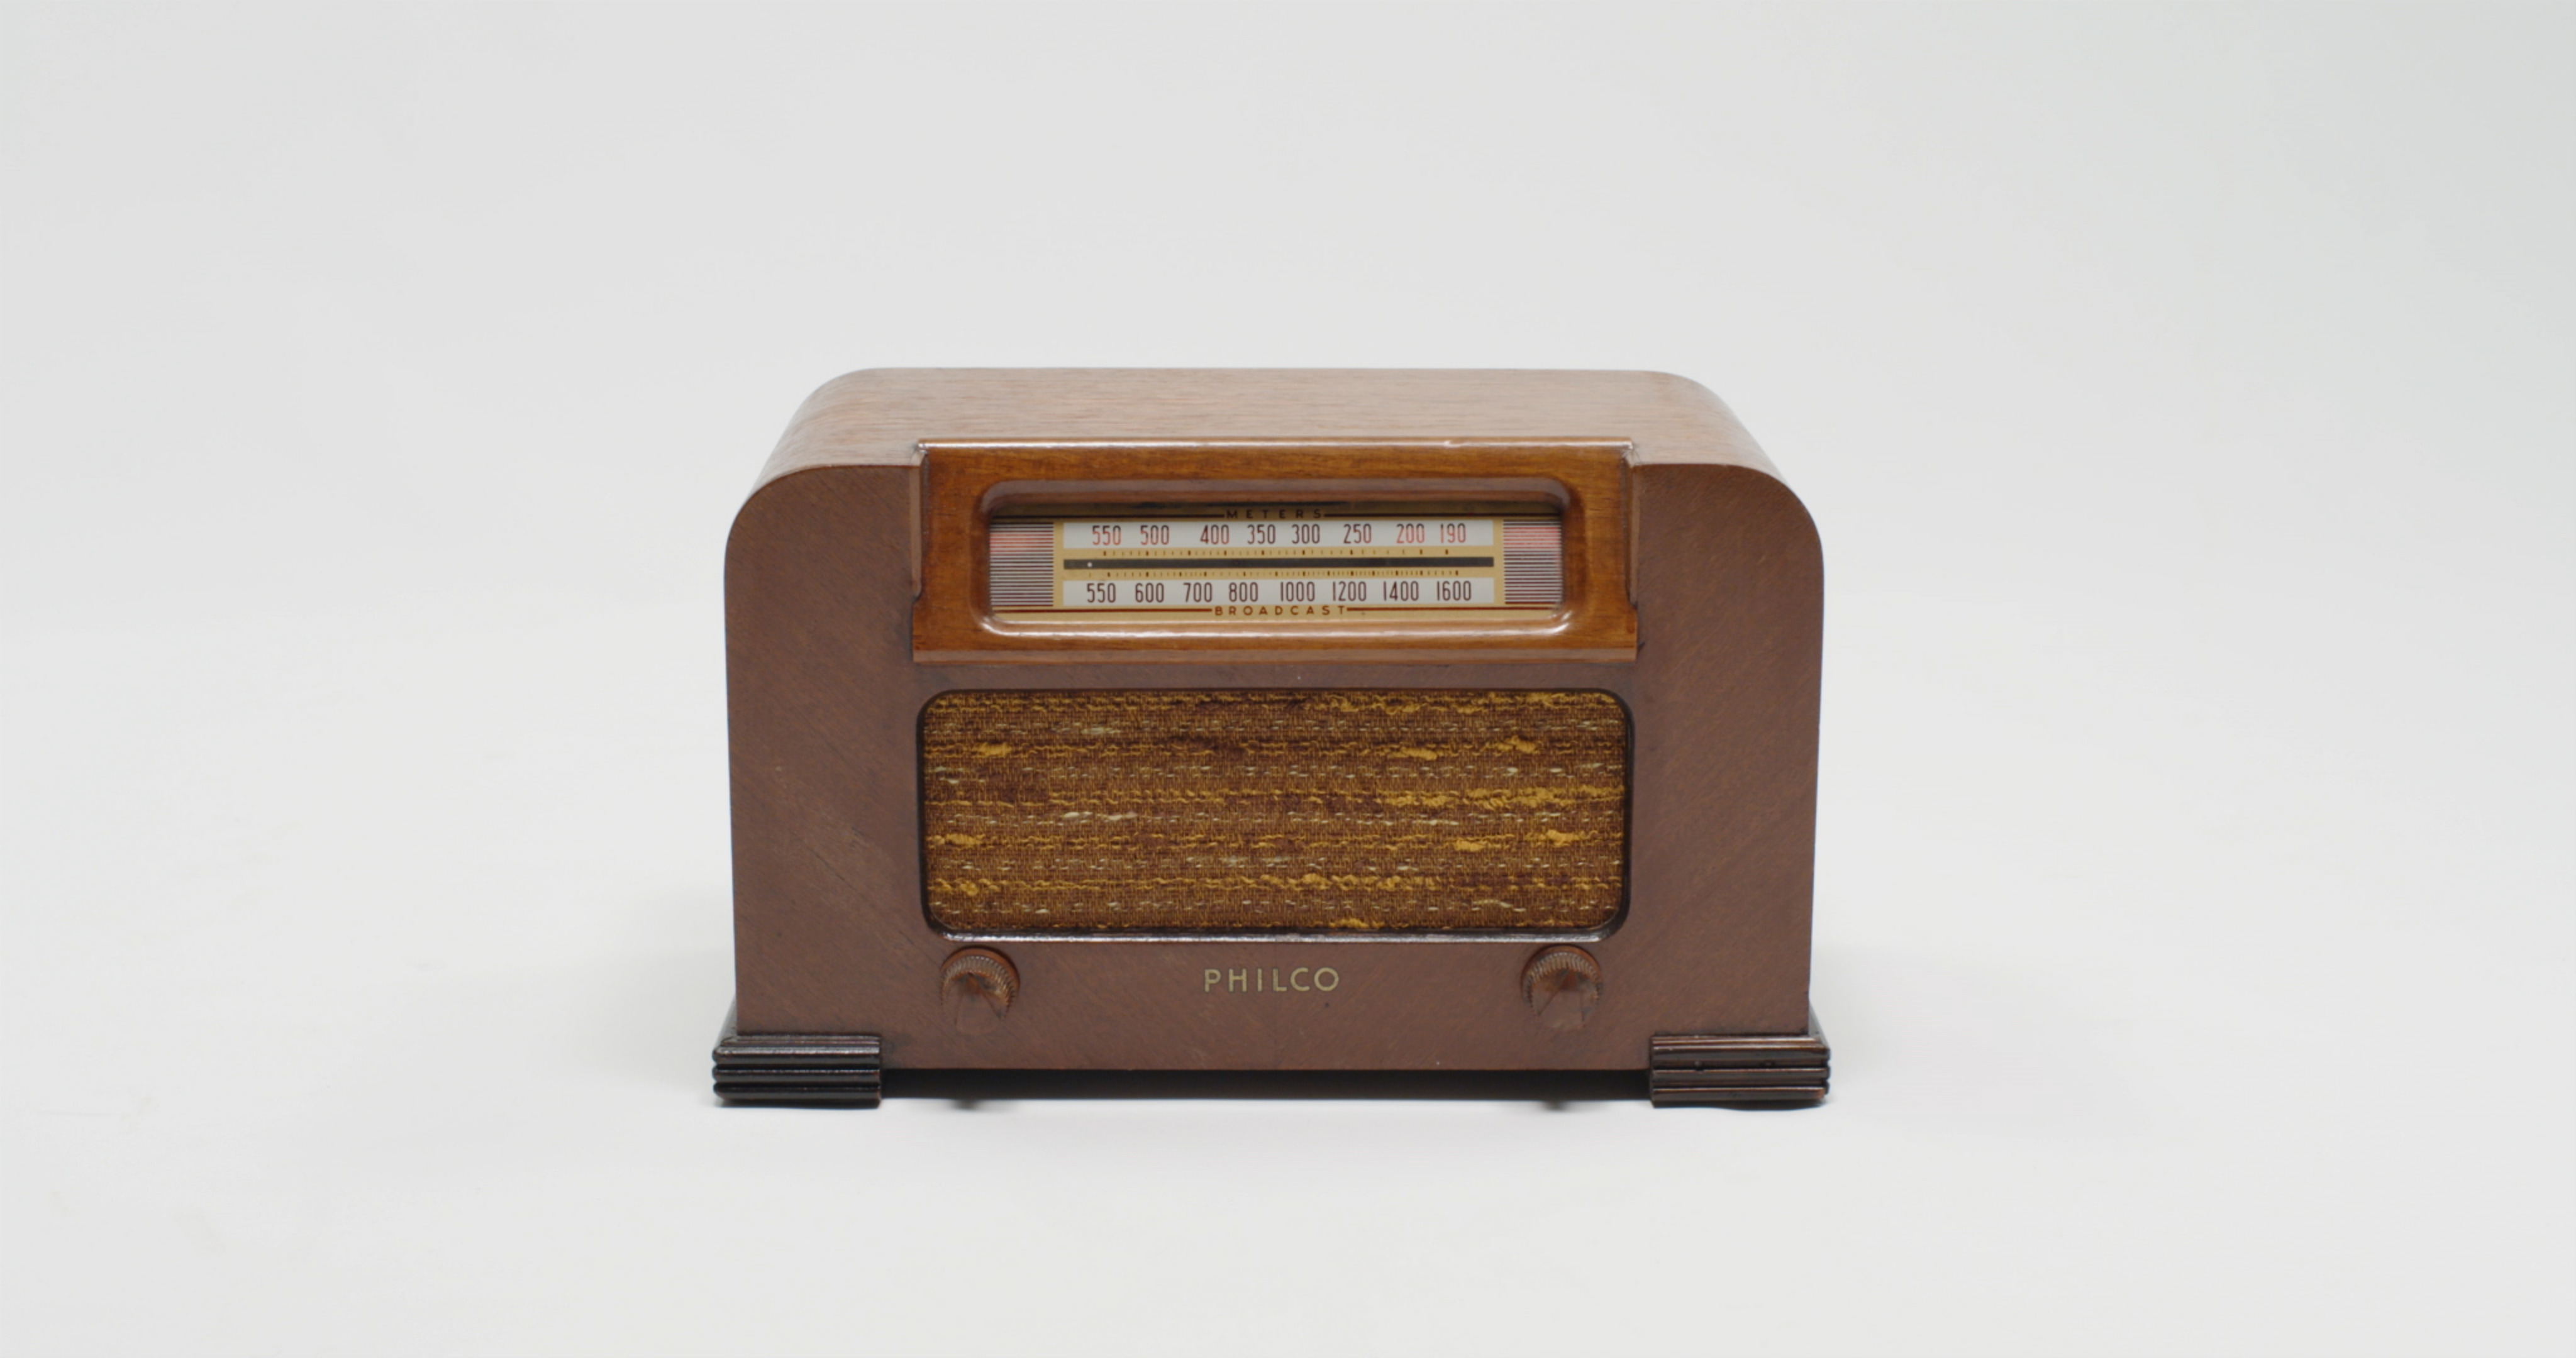 Philco Radio stock footage